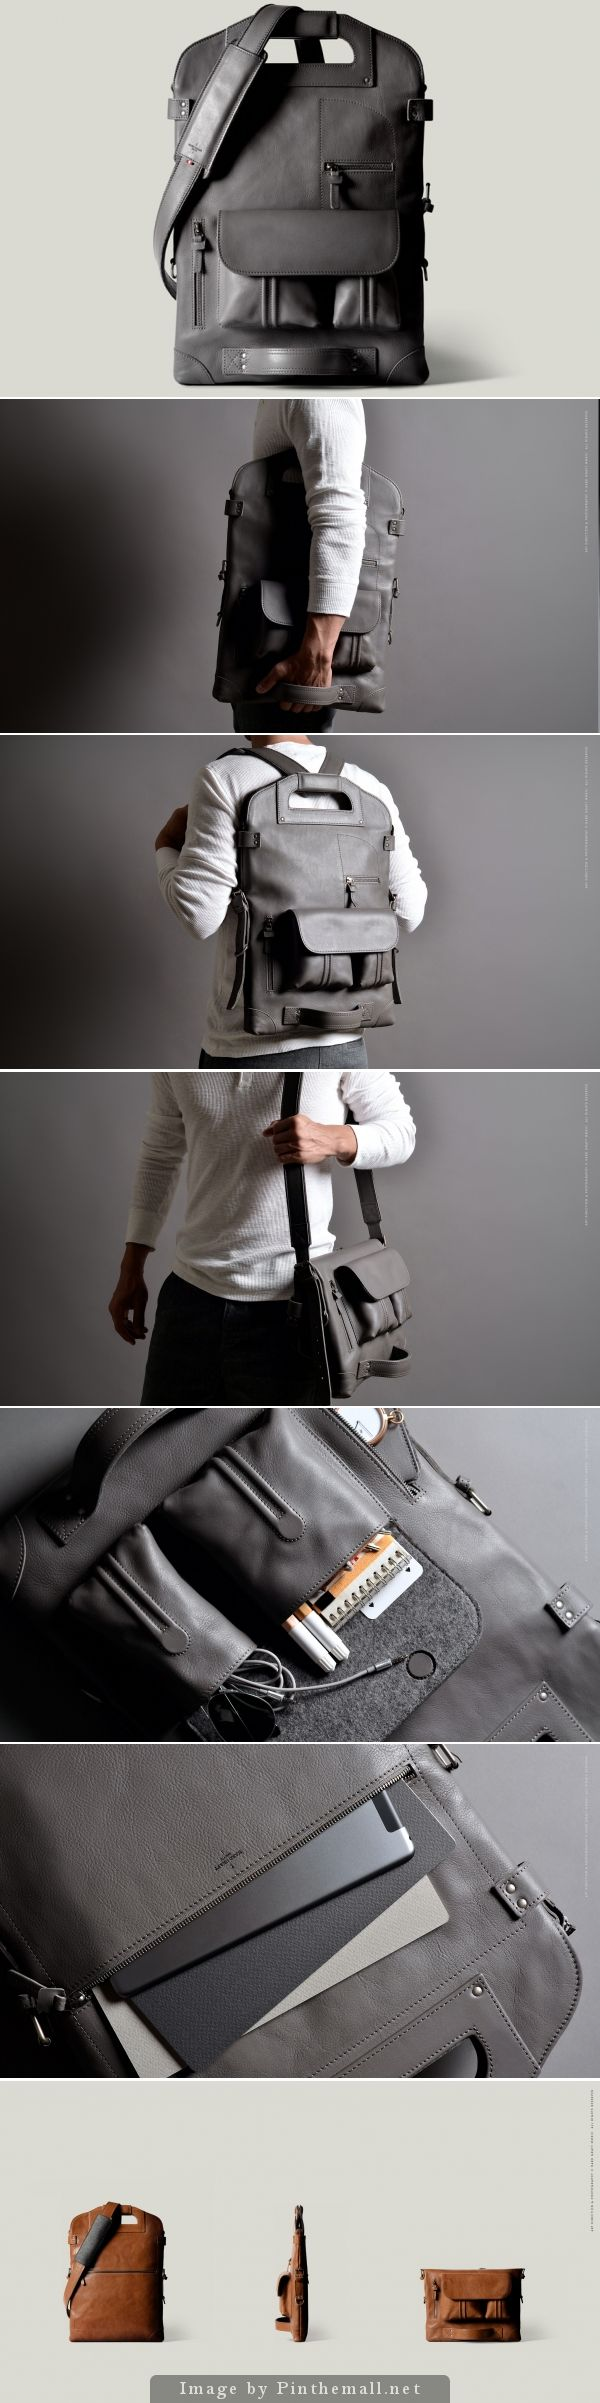 Good grief, this bag is amazing! - 2Unfold Laptop Bag - by Hard Graft. | About $800 USD. Well done @hardgraft!